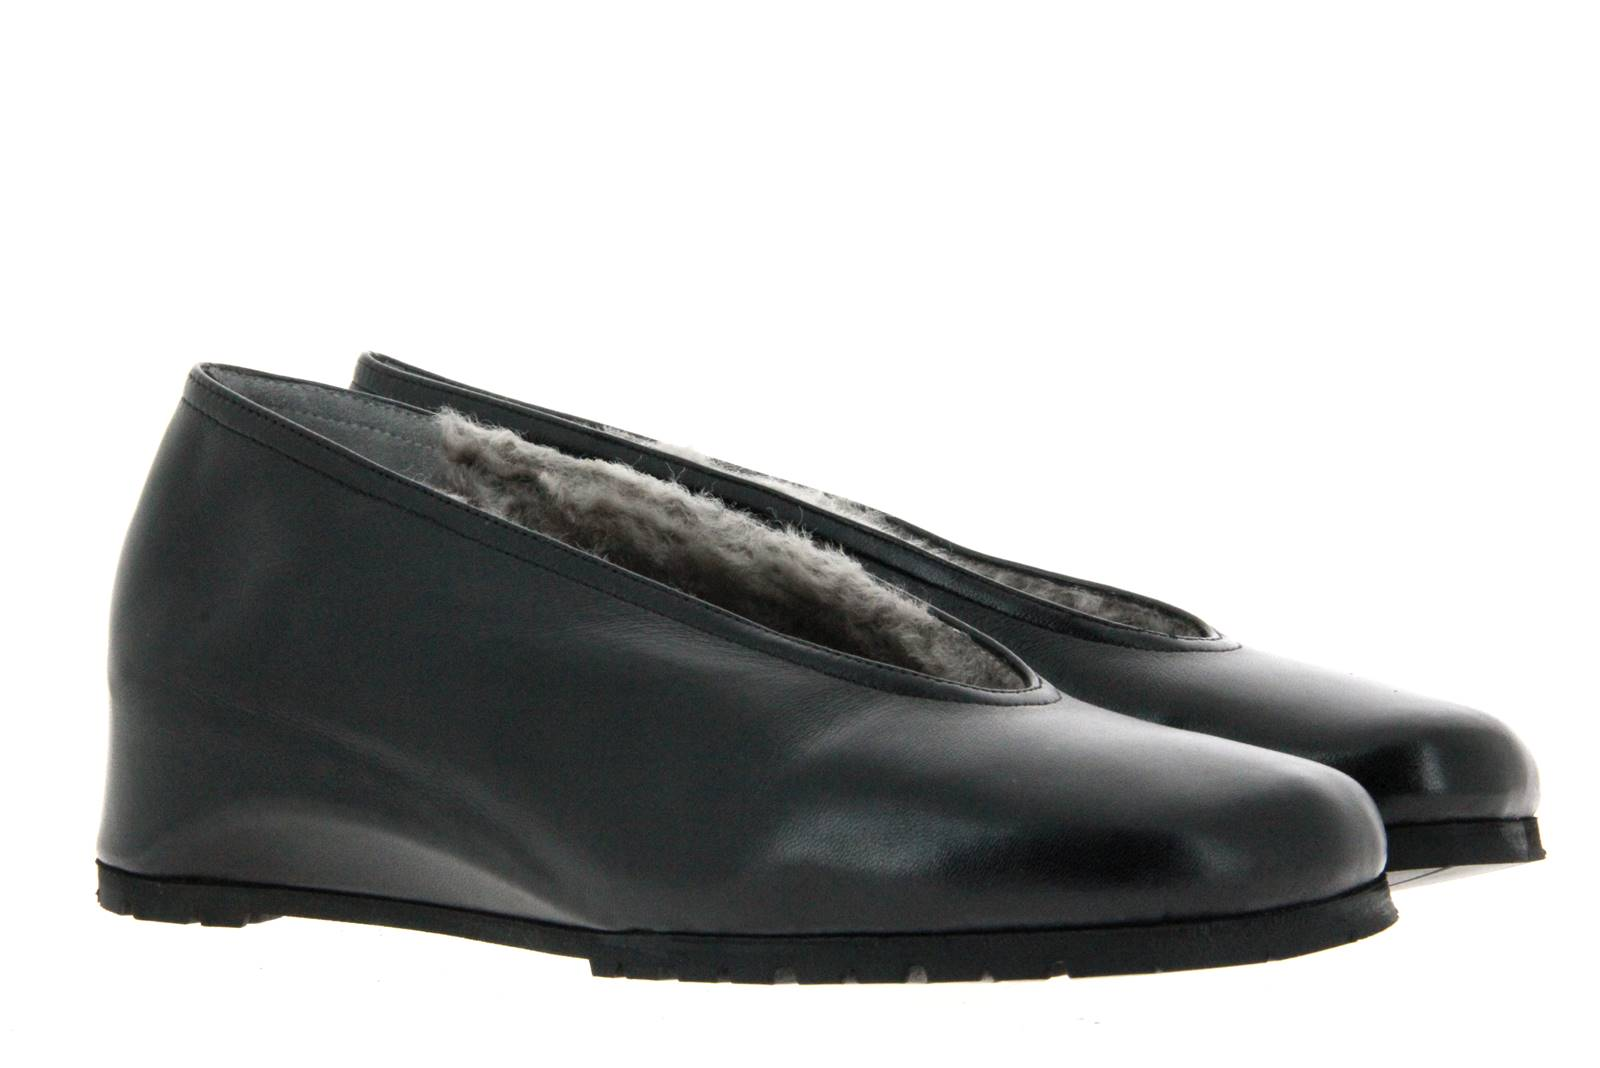 Thierry Rabotin slipper lined NAPPA NERO